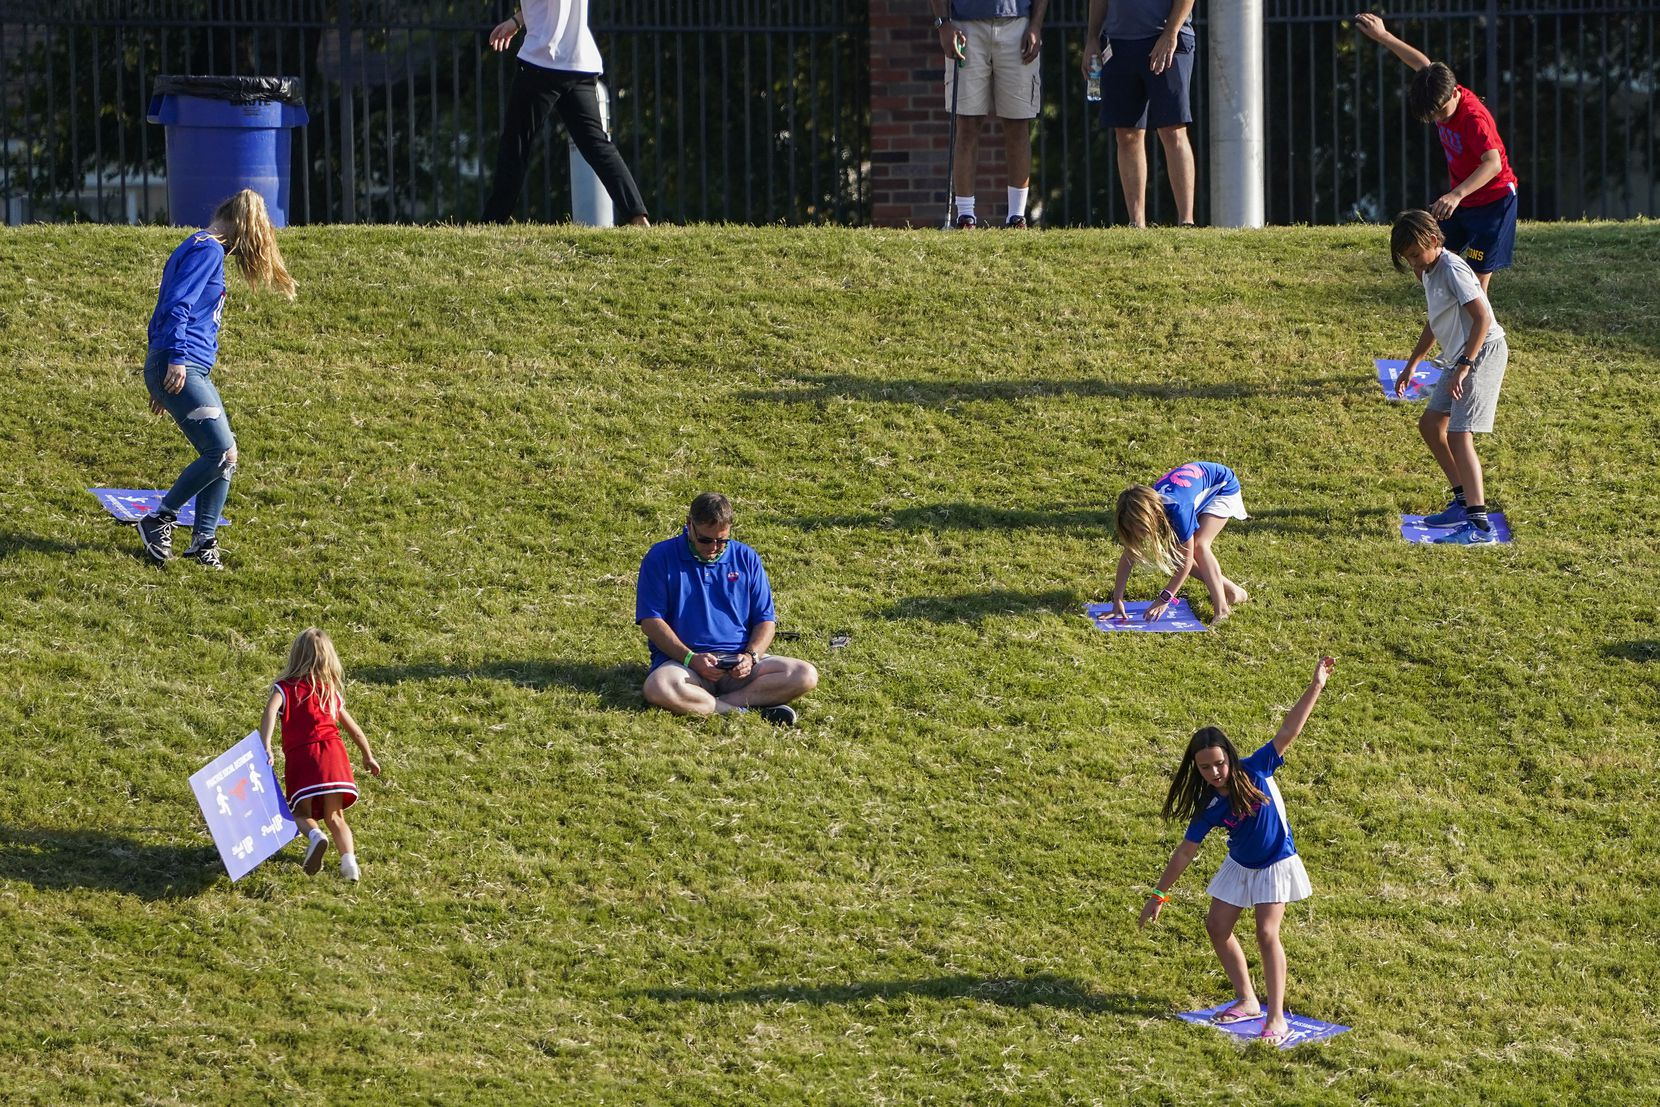 Children use social distancing signs to slide down the hill in the south end zone during the second half of an NCAA football game between SMU and Memphis at Ford Stadium on Saturday, Oct. 3, 2020, in Dallas. (Smiley N. Pool/The Dallas Morning News)